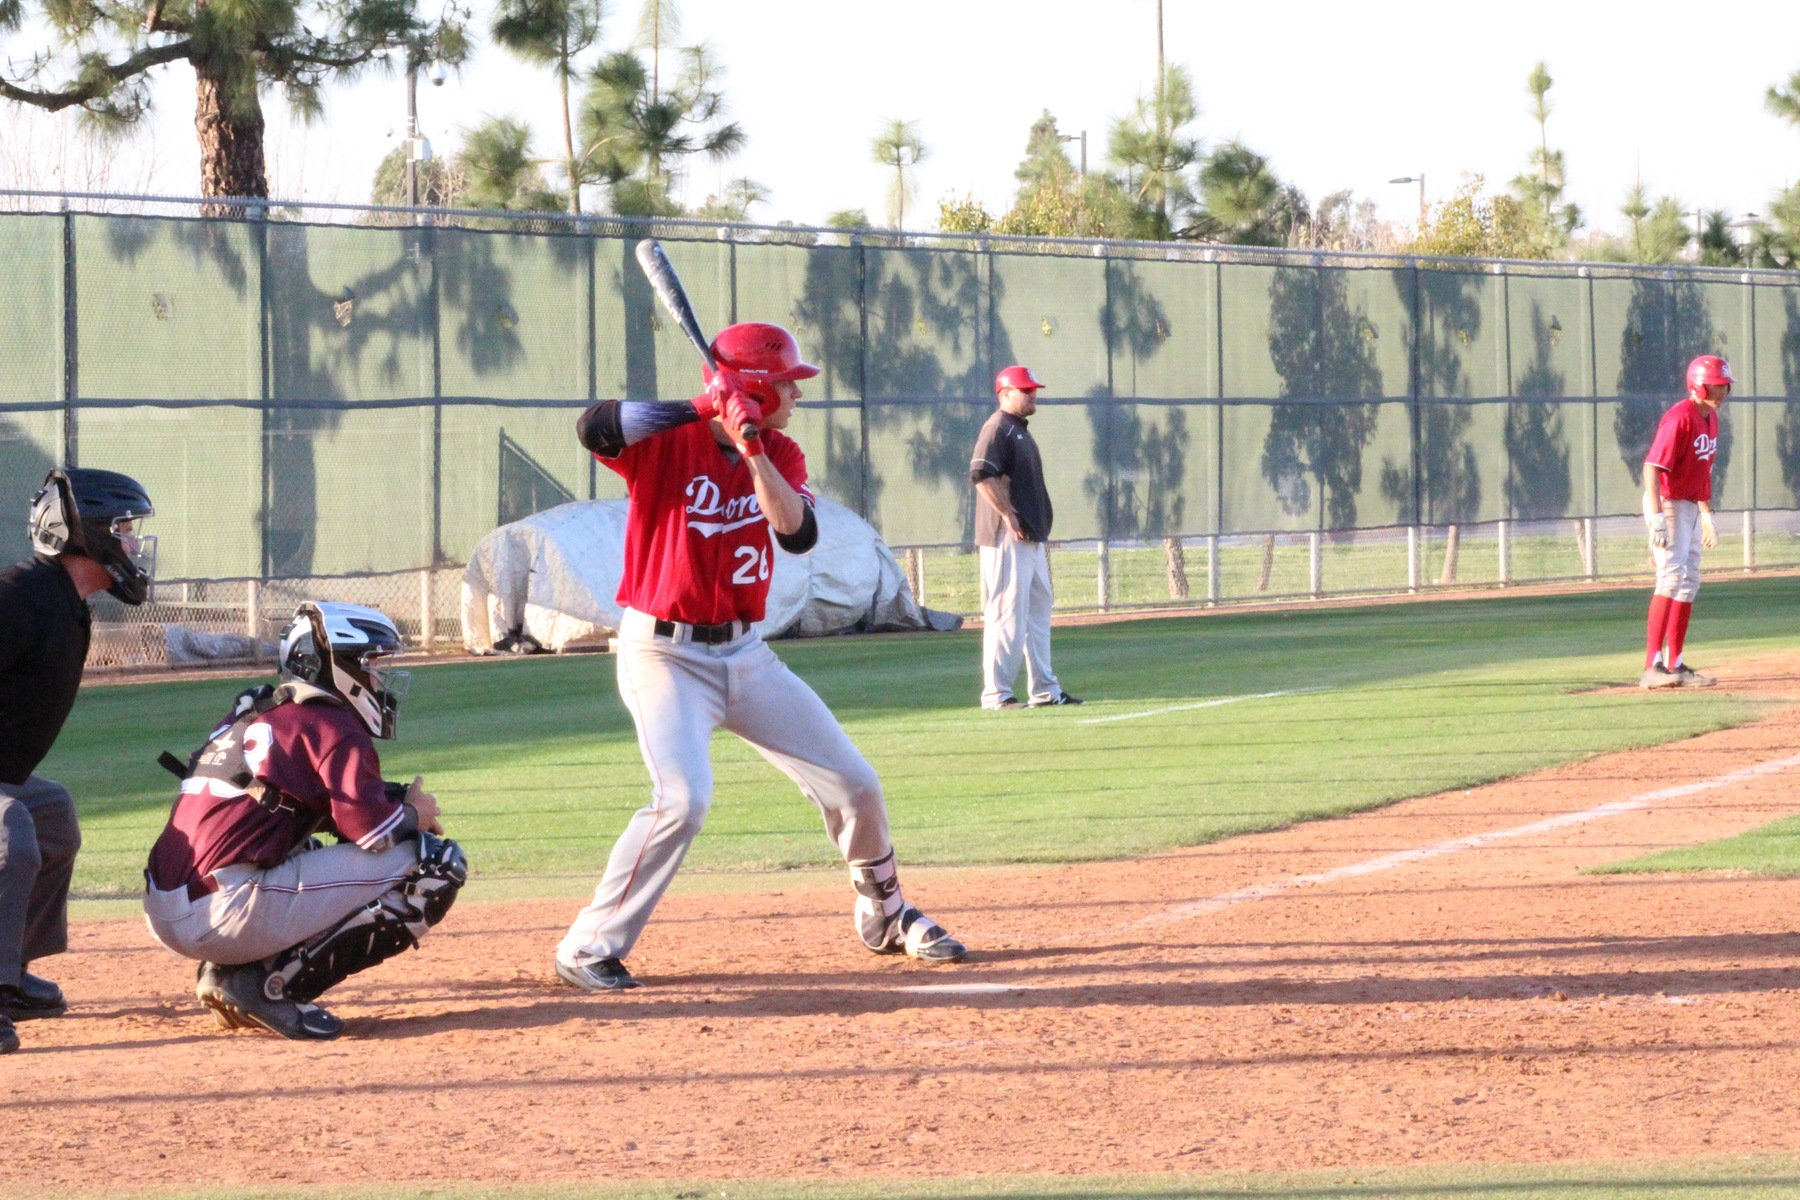 Defensive Miscues Prove Costly for the Dons in 13-10 Loss to Mt. SAC